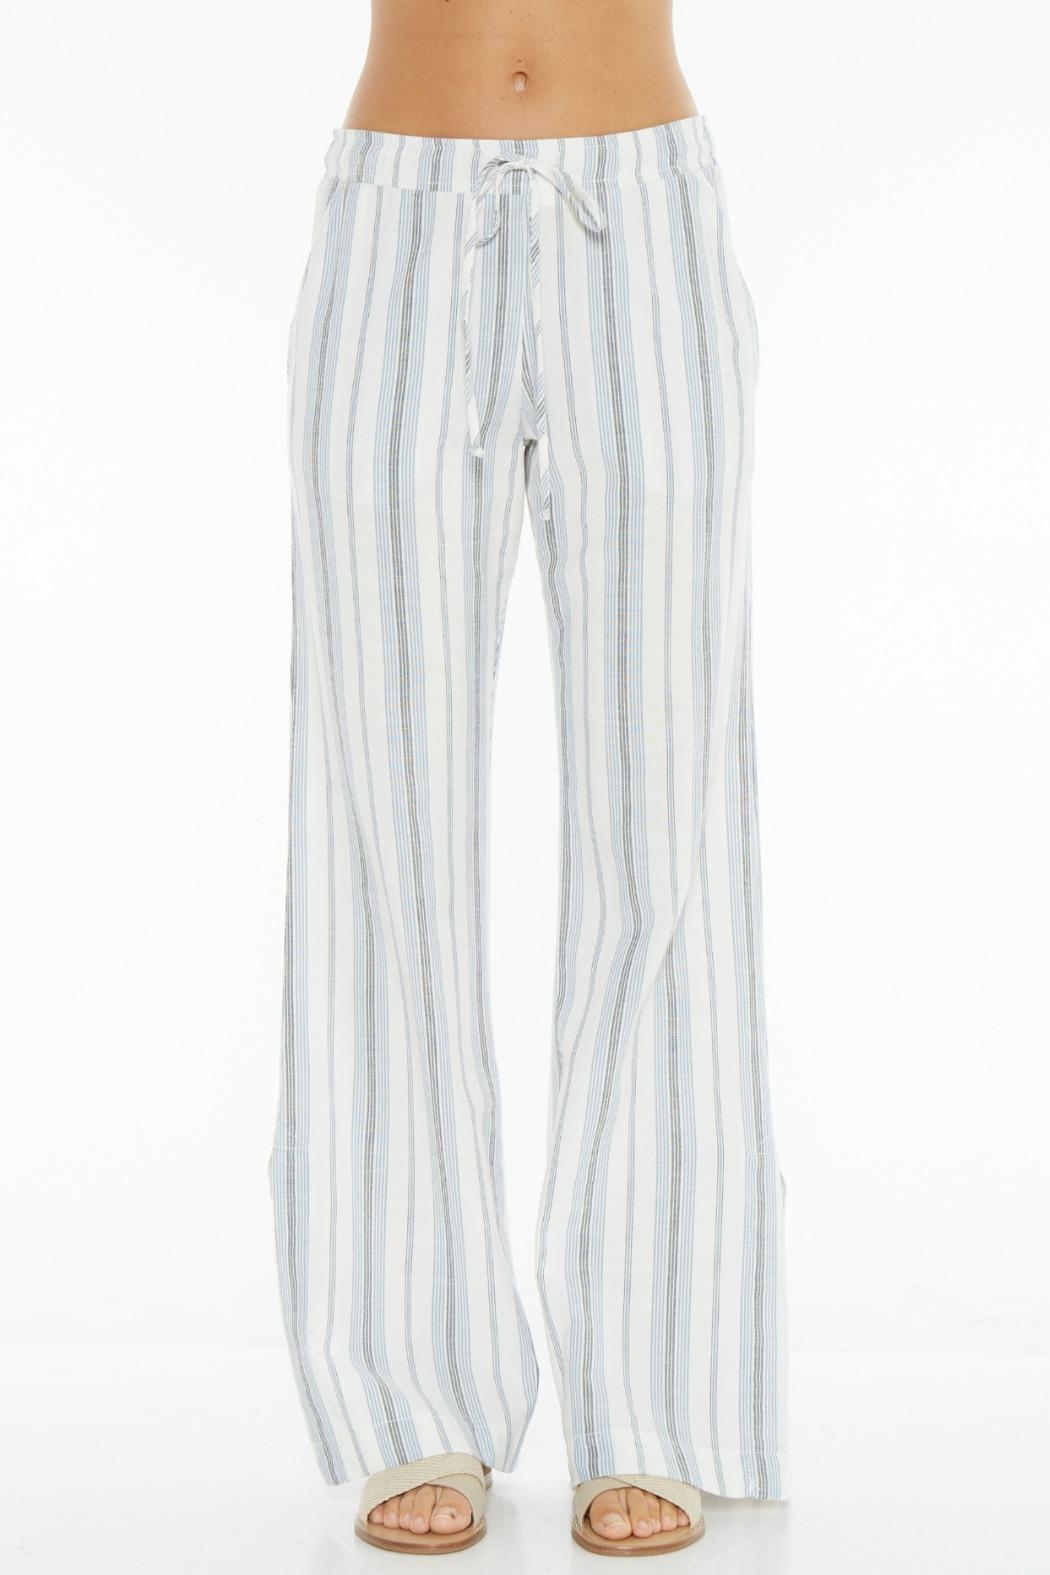 Bella Dahl Side Slit Pant - Main Image